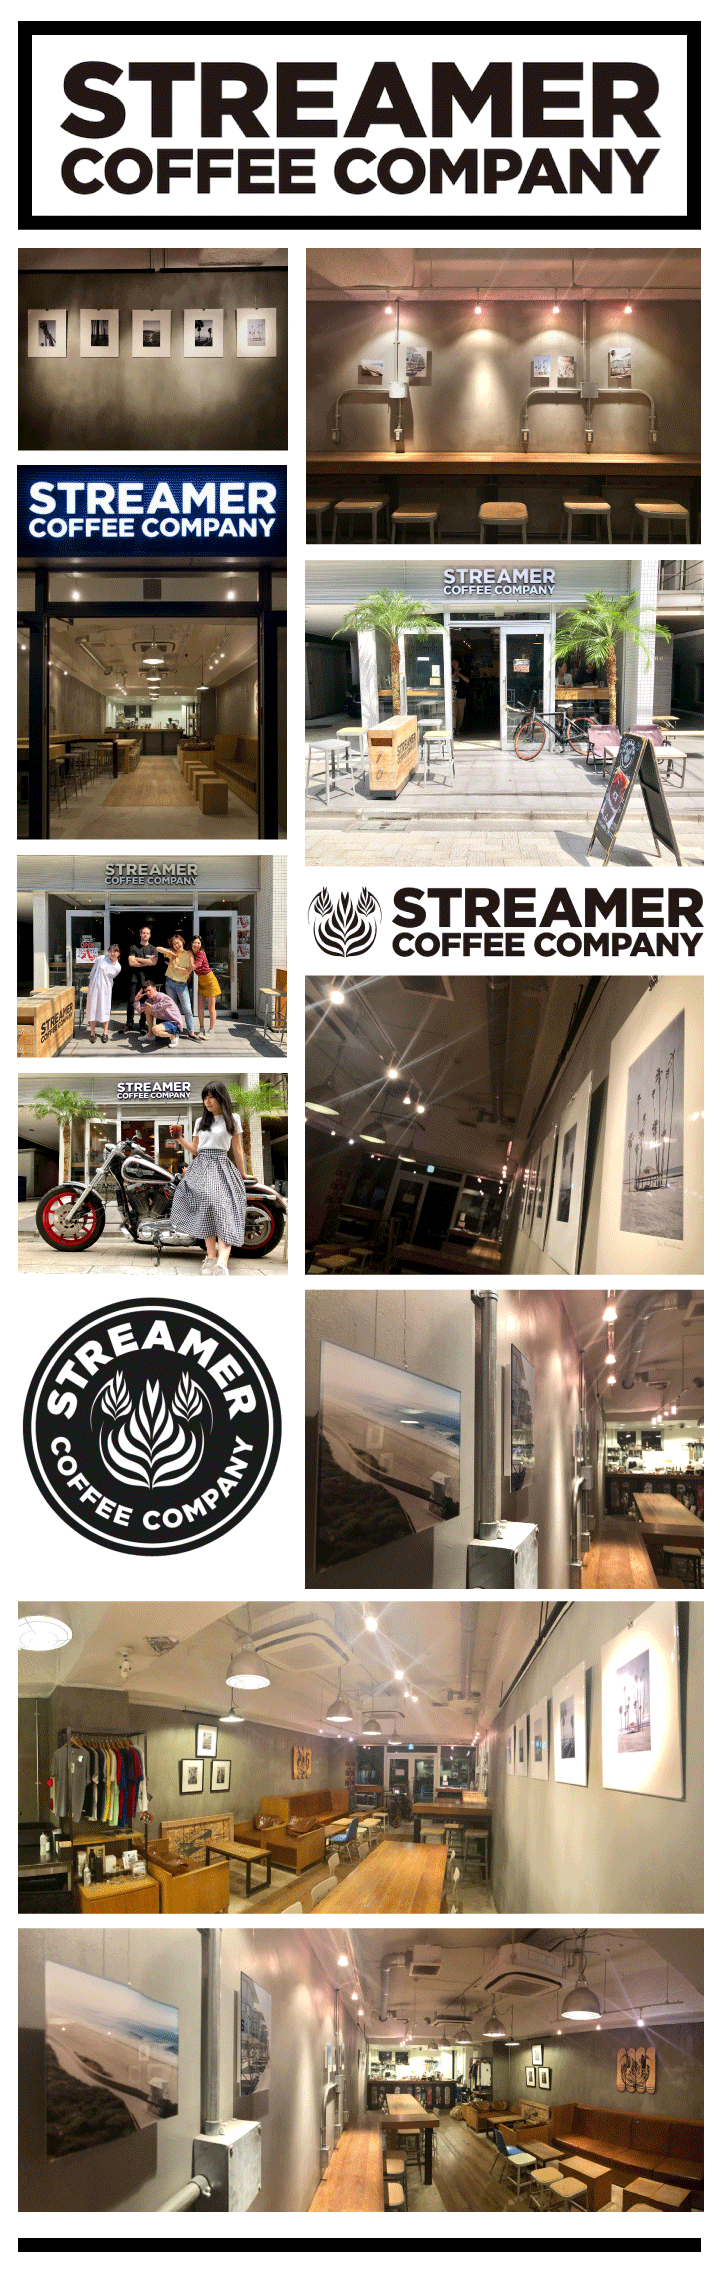 Streamer2-Collage2